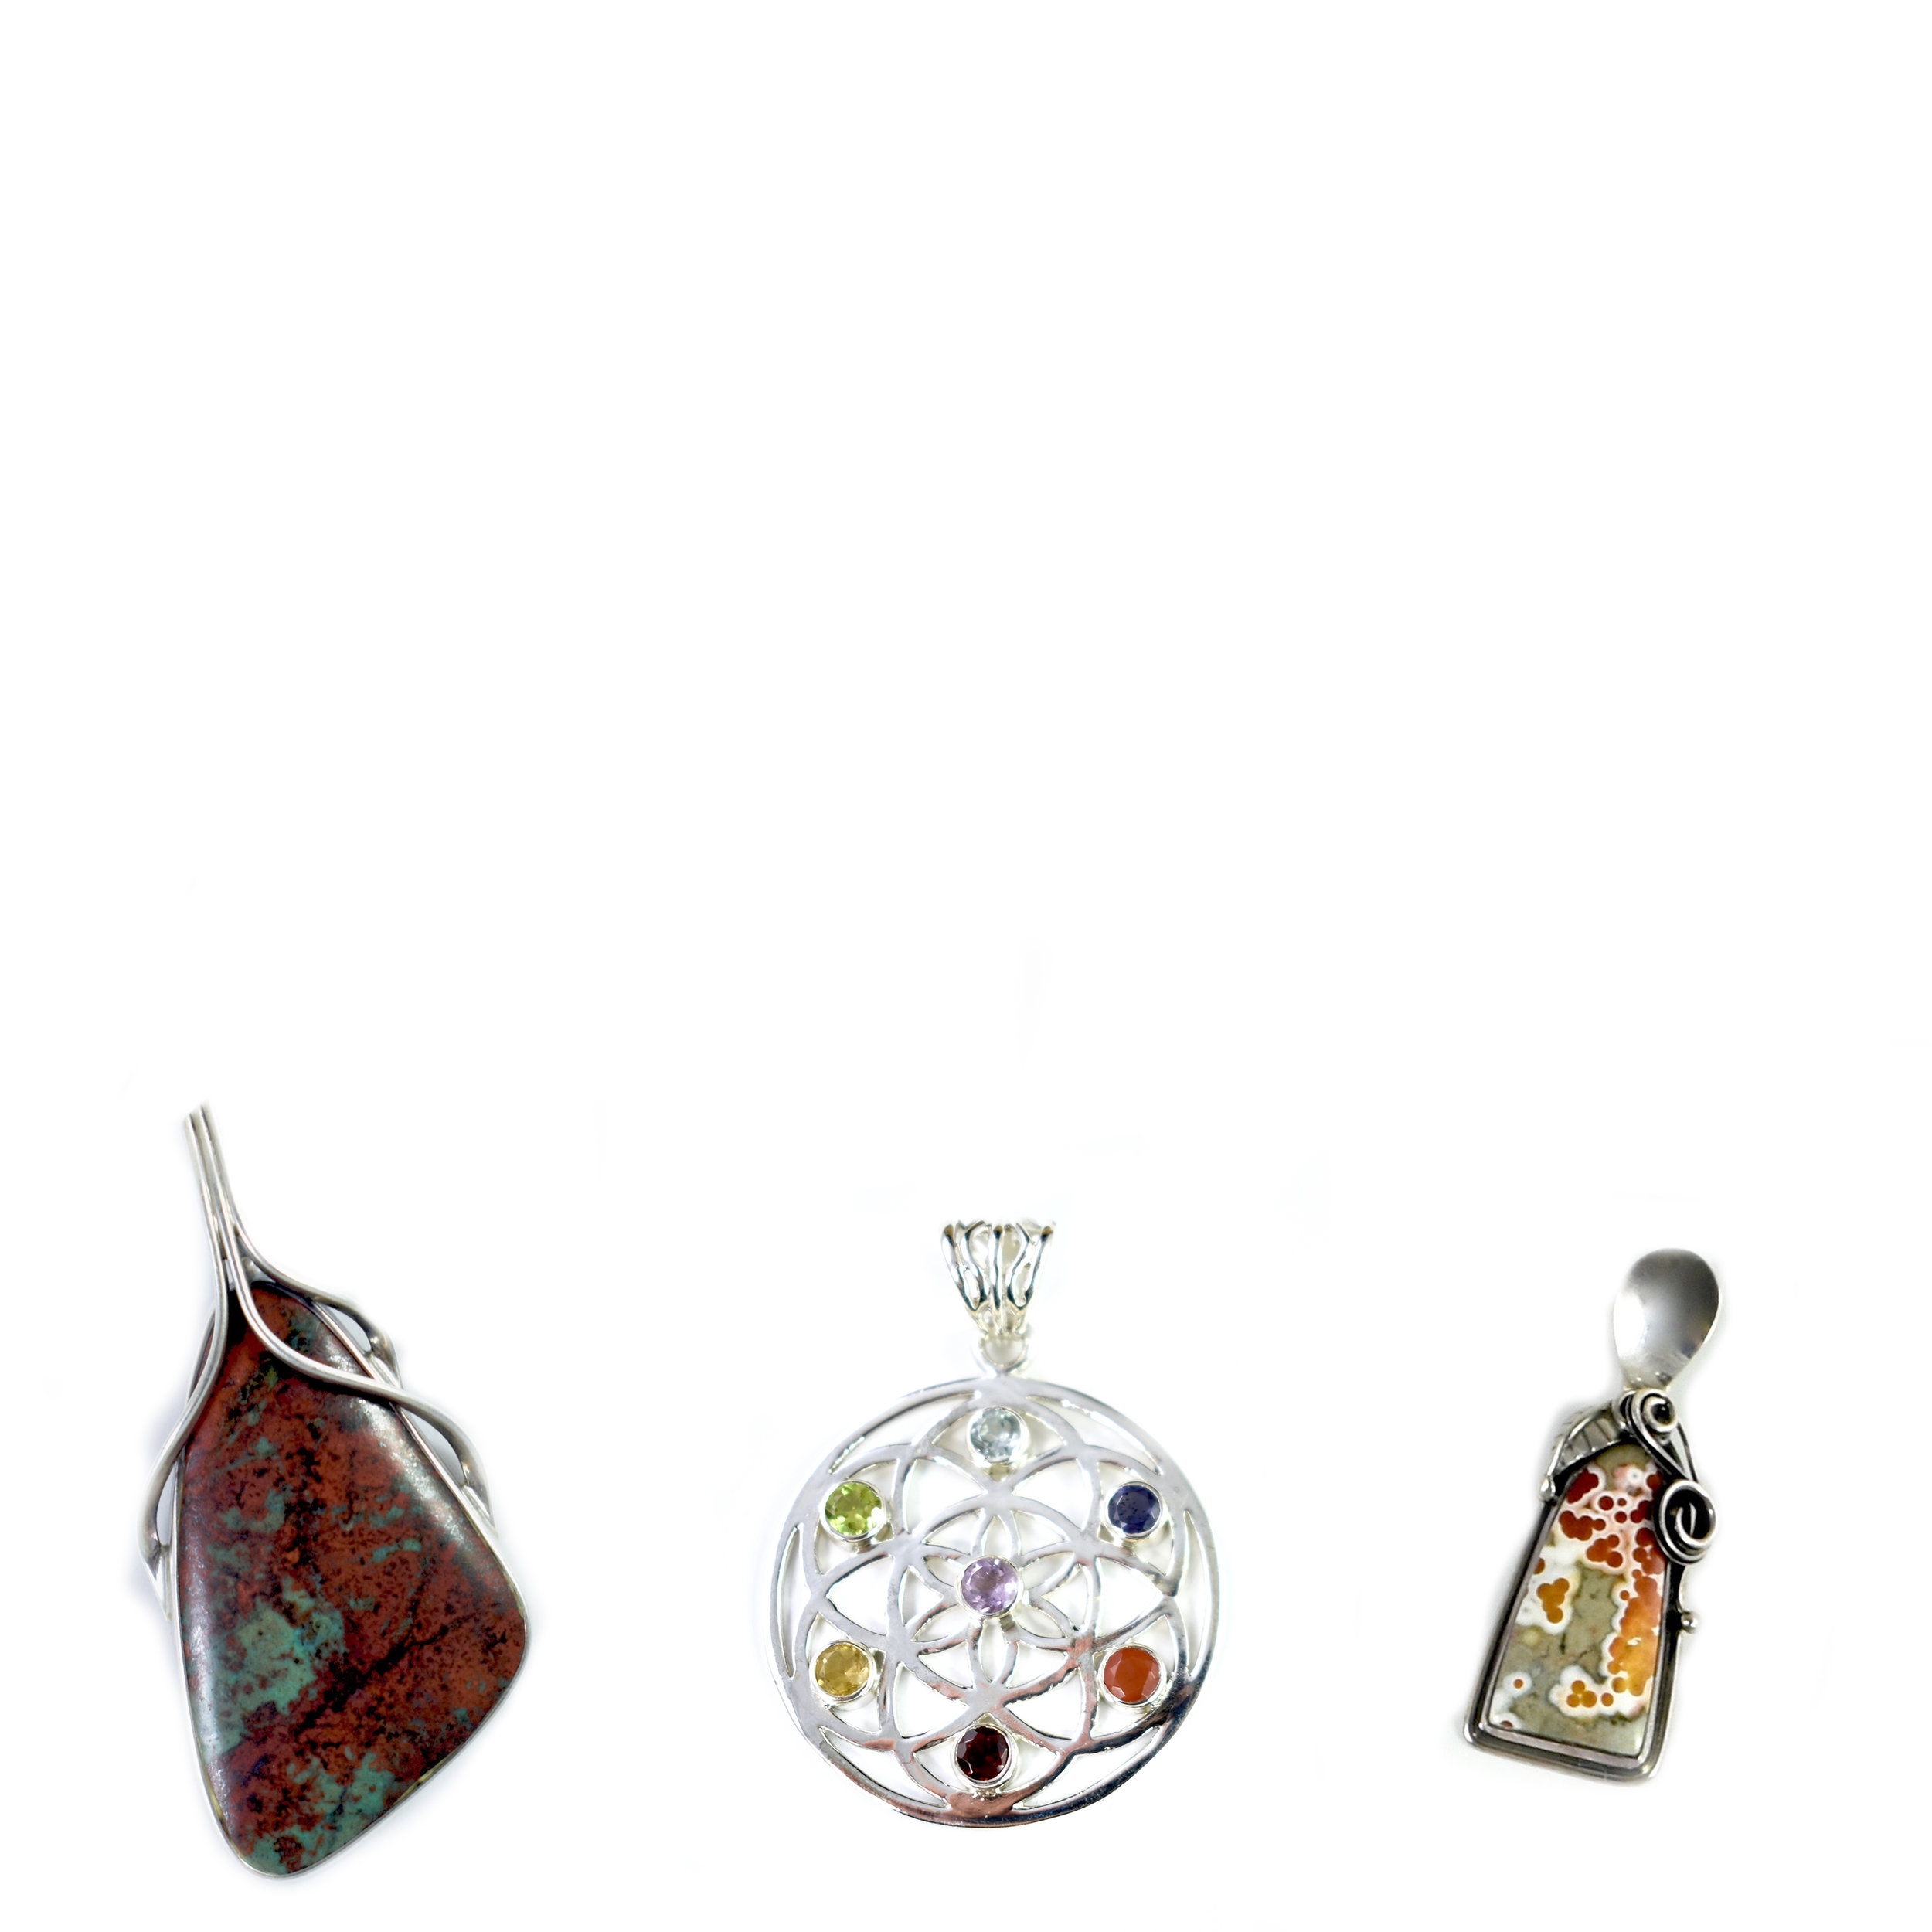 Shop Stone Pendants - Natural Stones in Sterling Silver Settings